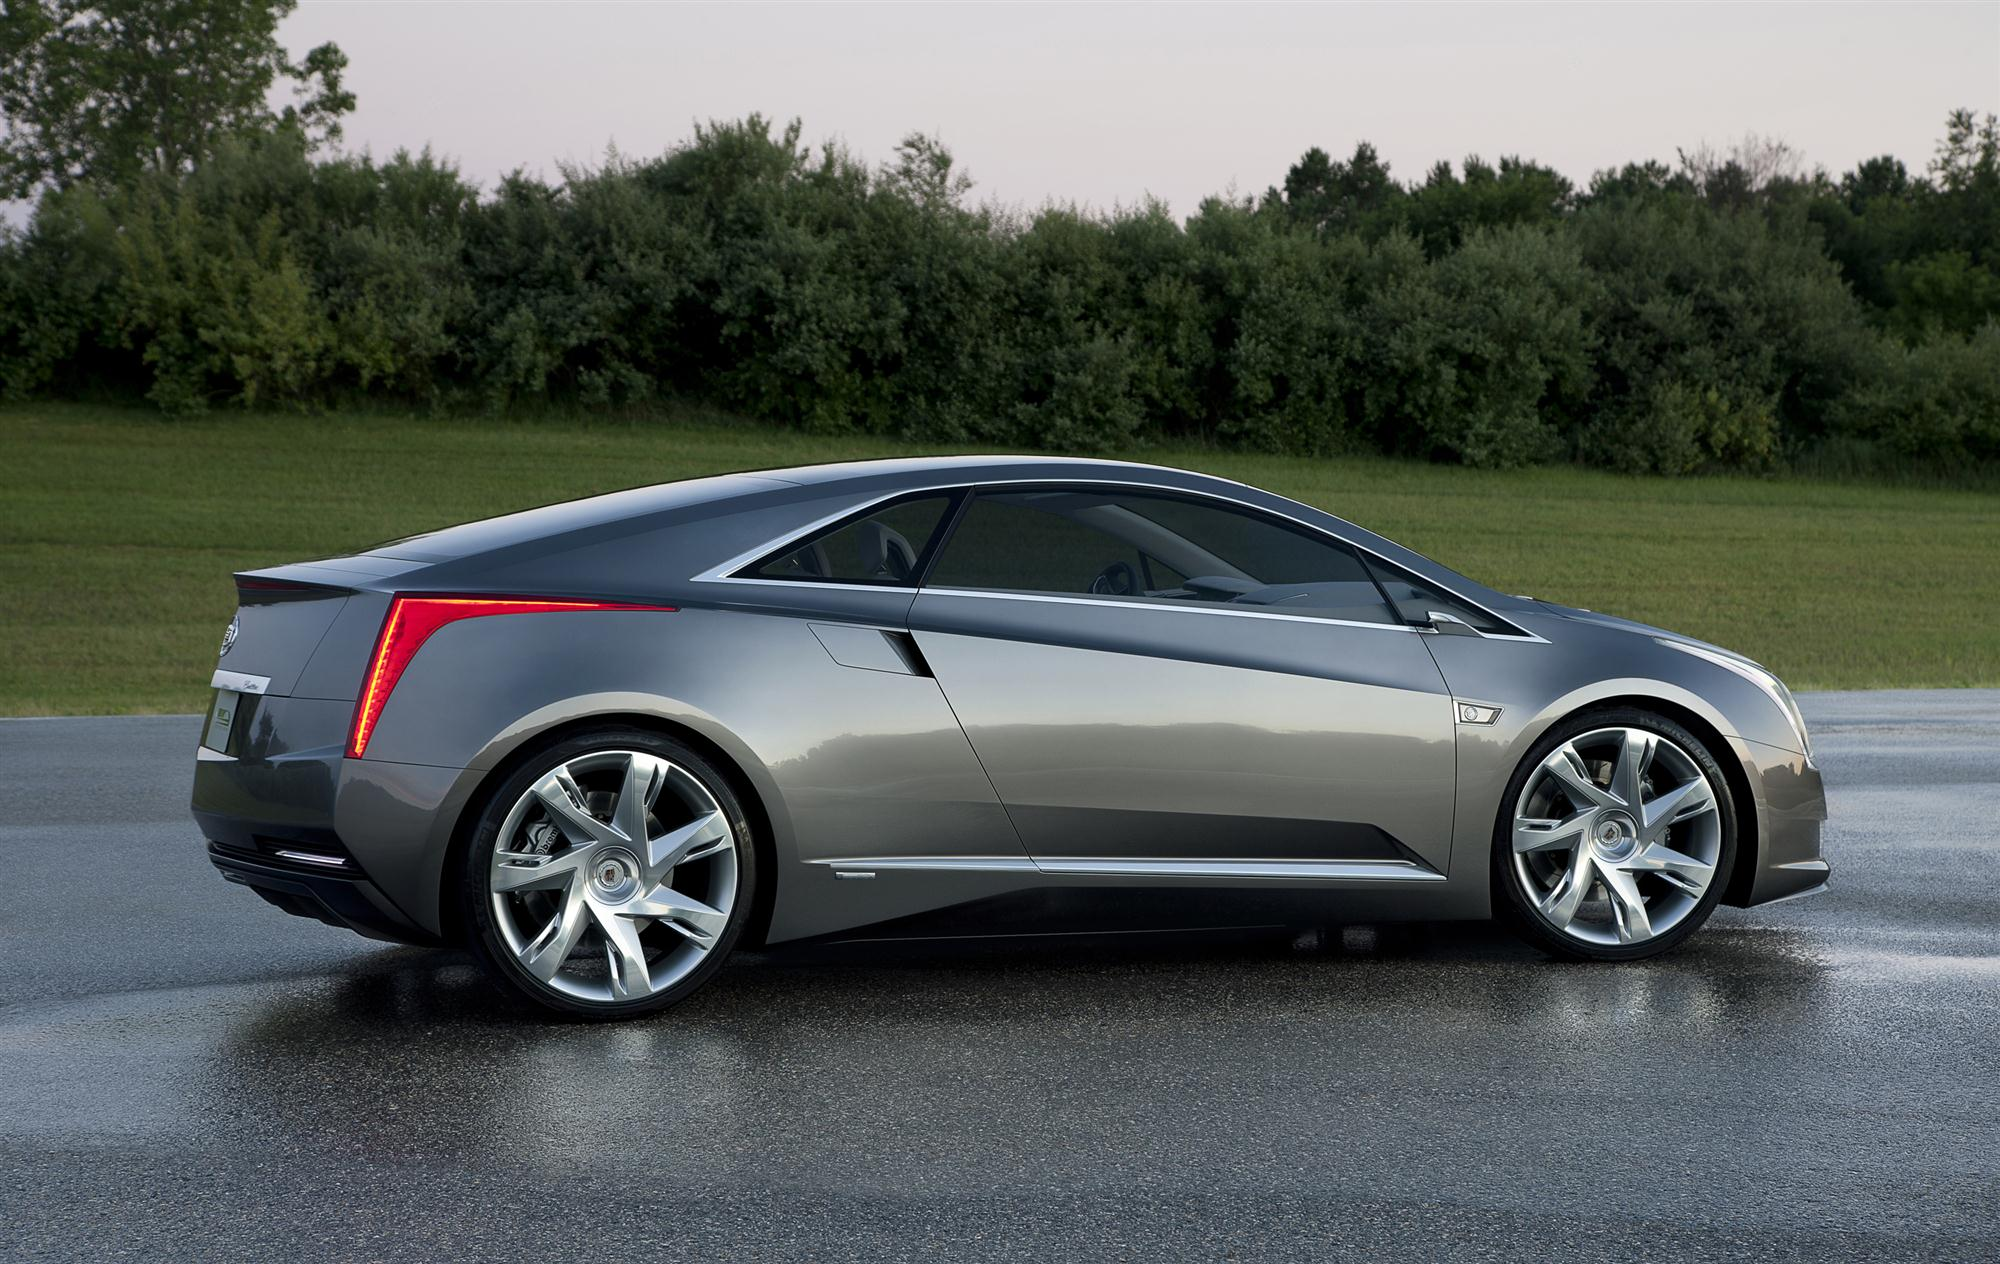 2014 cadillac elr electric luxury coupe to arrive late 2013. Black Bedroom Furniture Sets. Home Design Ideas